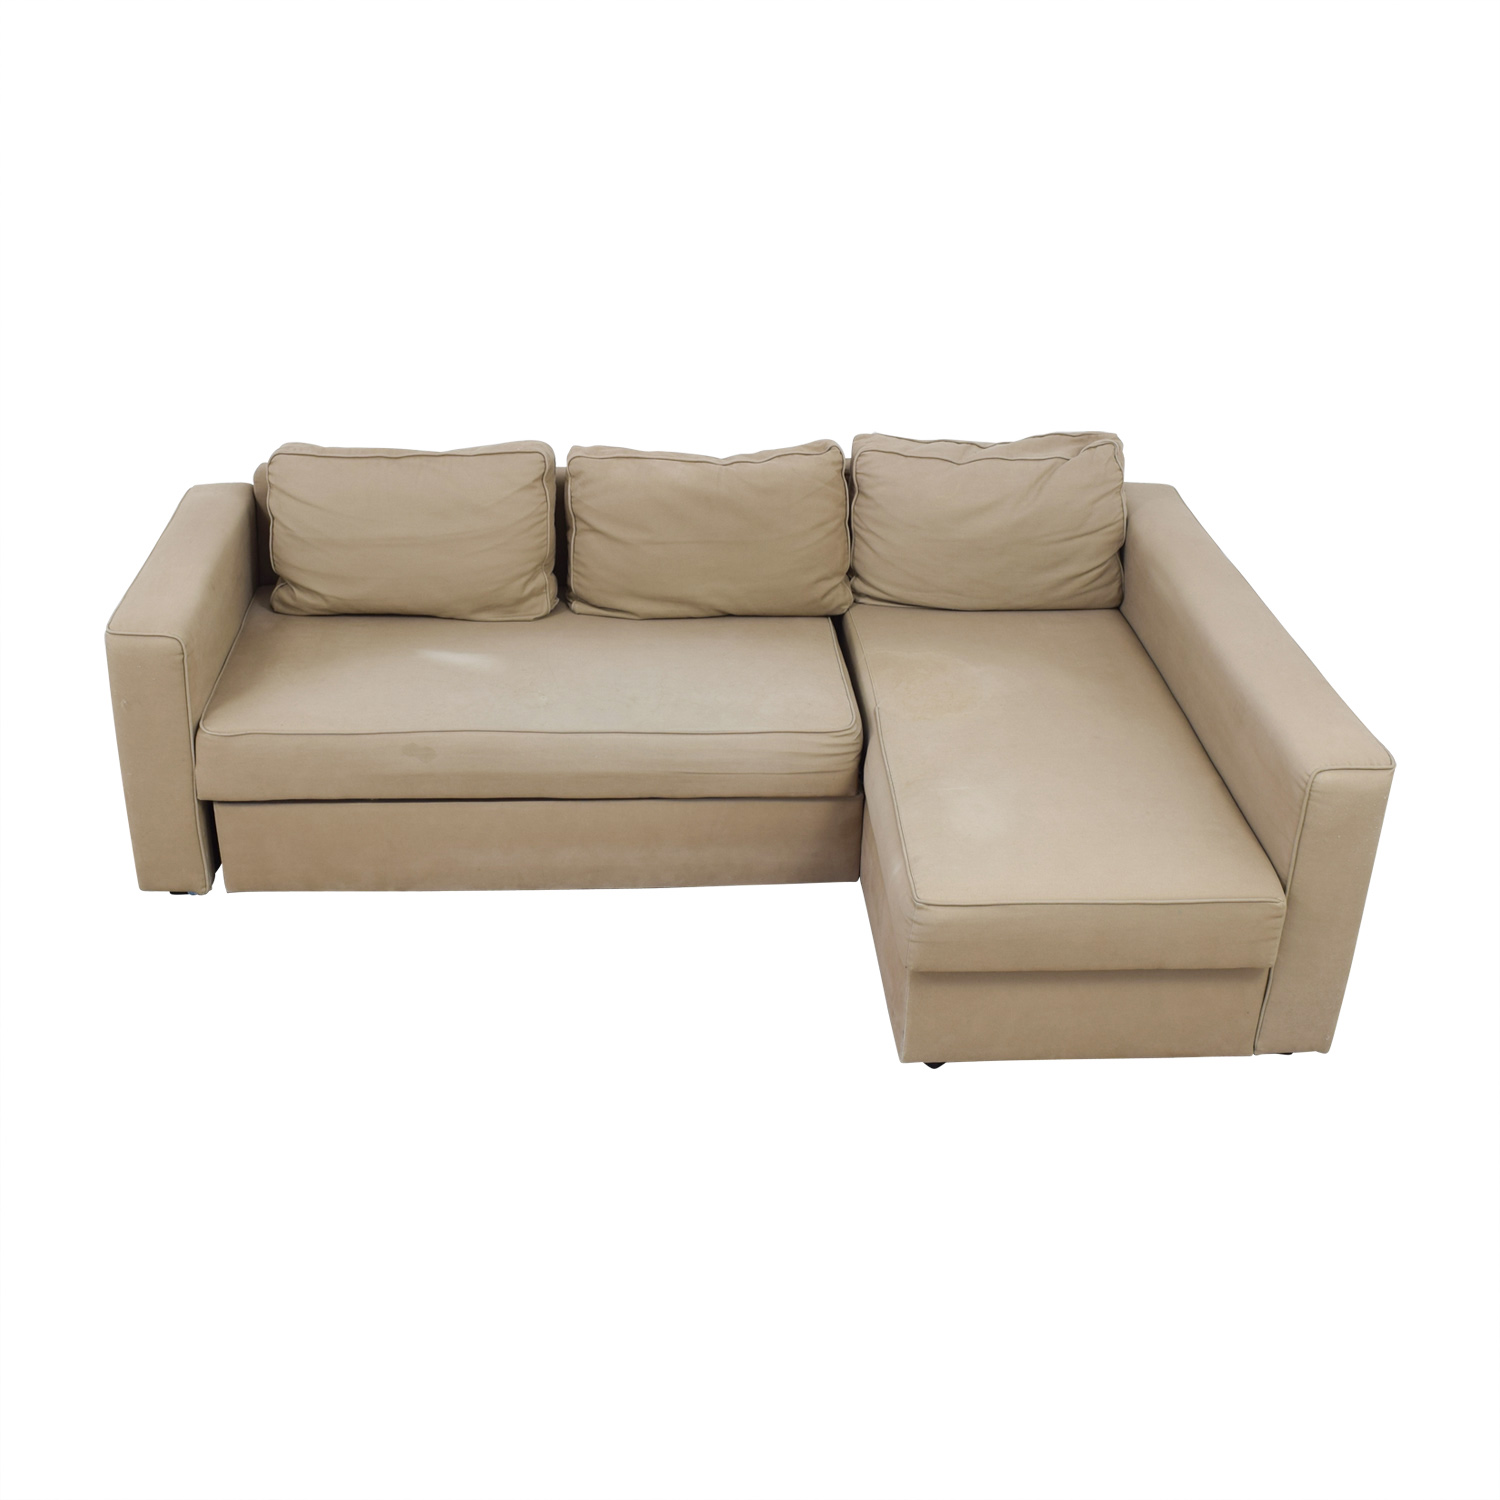 ikea couch sofa sectional manstad country cottage sofas and chairs uk bed furniture beds